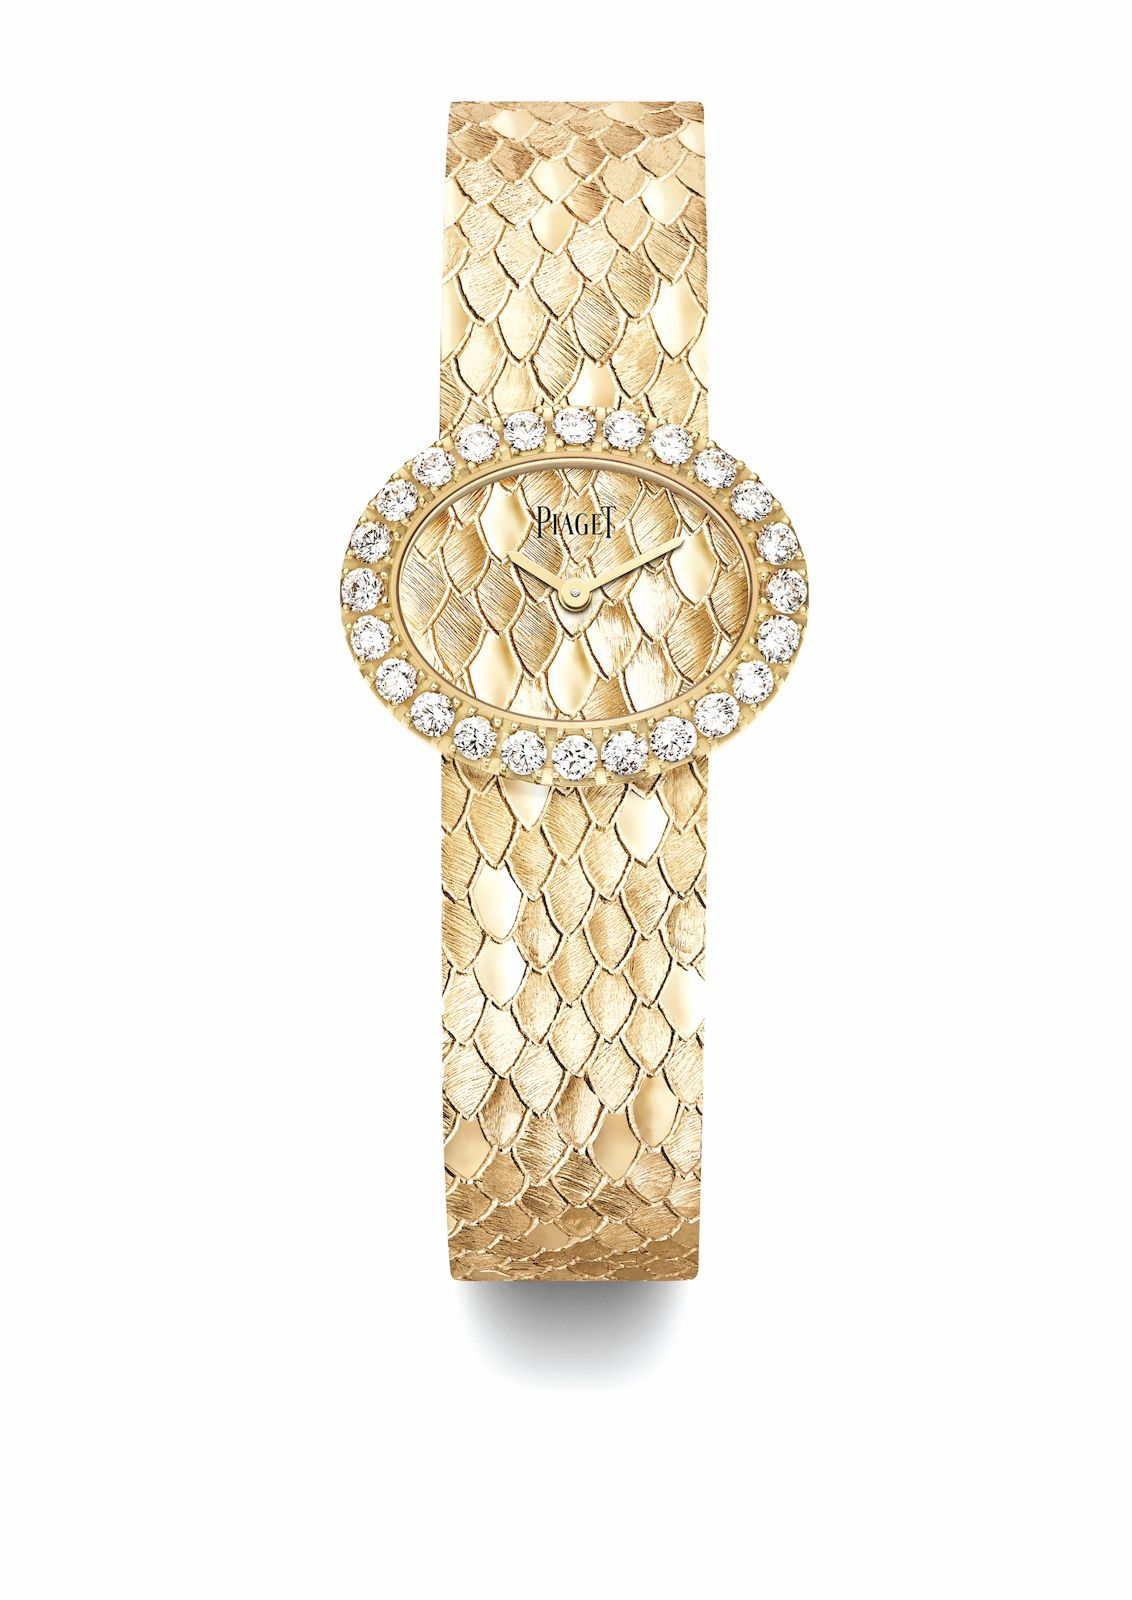 In the hands of Piaget's master artisans, gold bracelets take on a new meaning